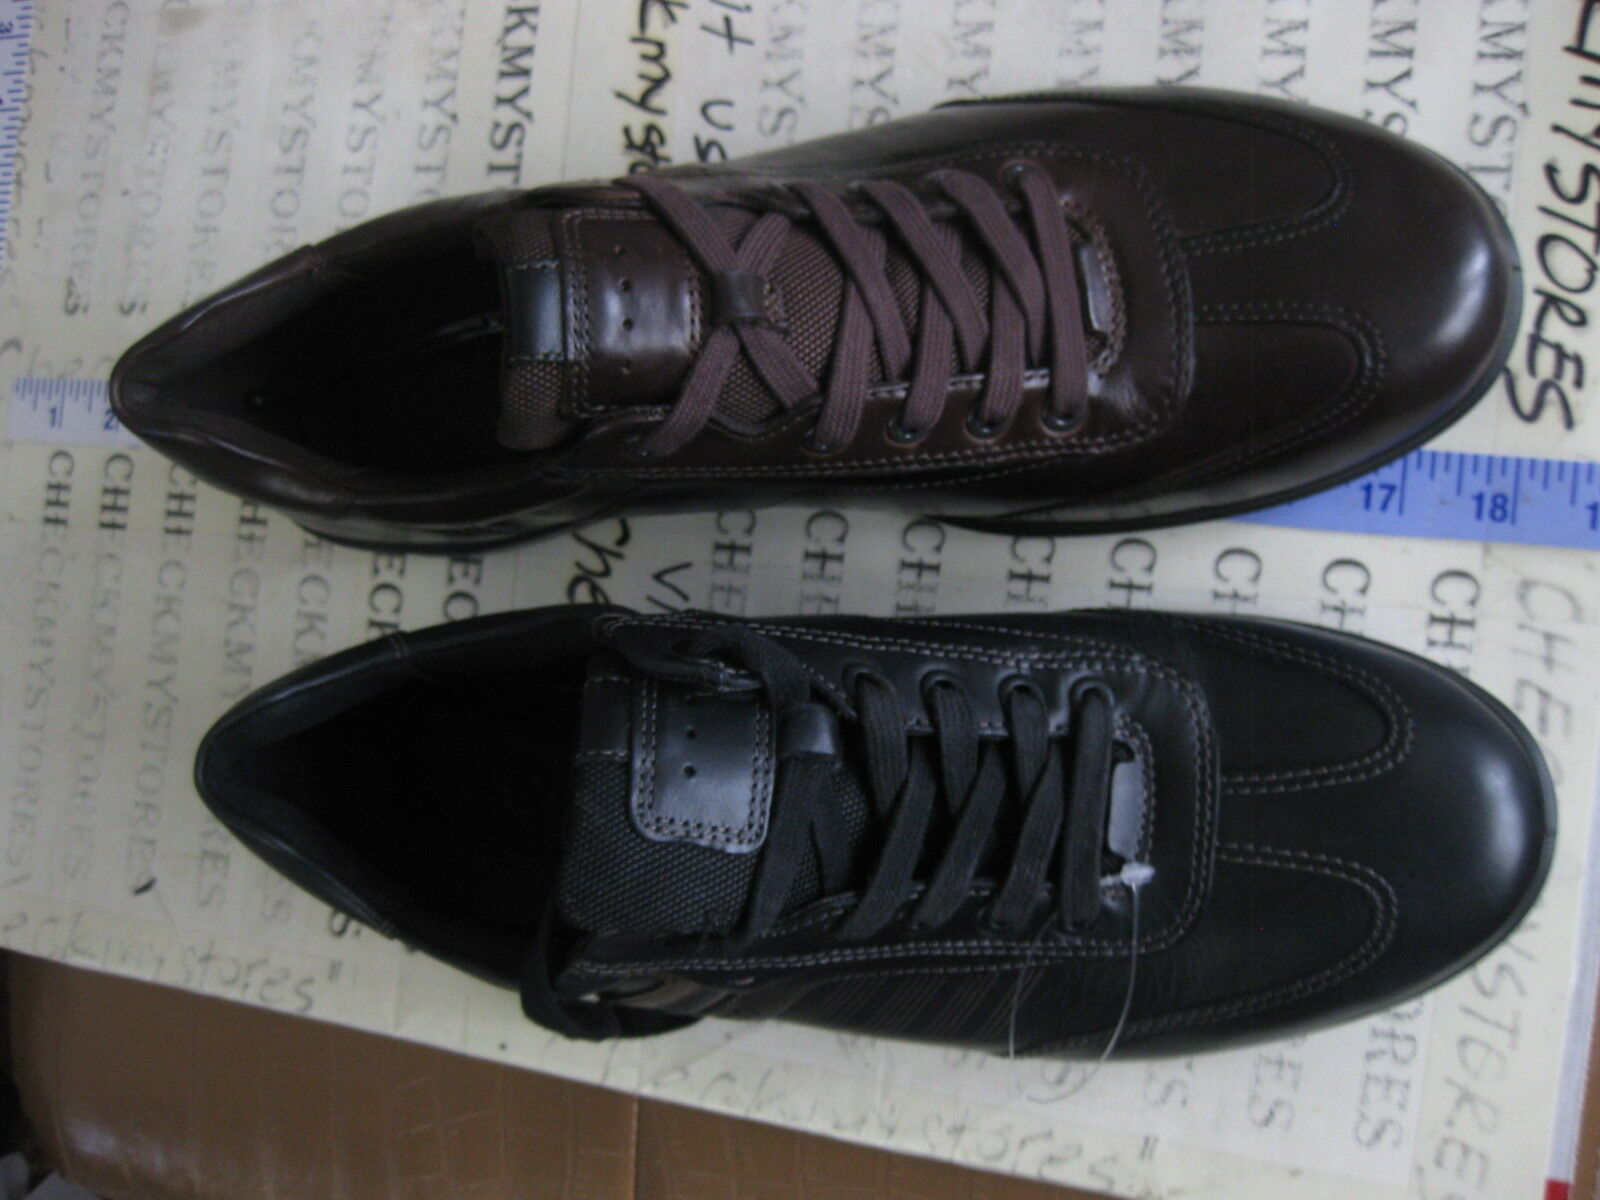 NEW  ECCO CHANDER 535174 CASUAL LACE-UP CASUAL 535174 DRESS SNEAKER LEATHER COMFORT SCARPE 2a6d75